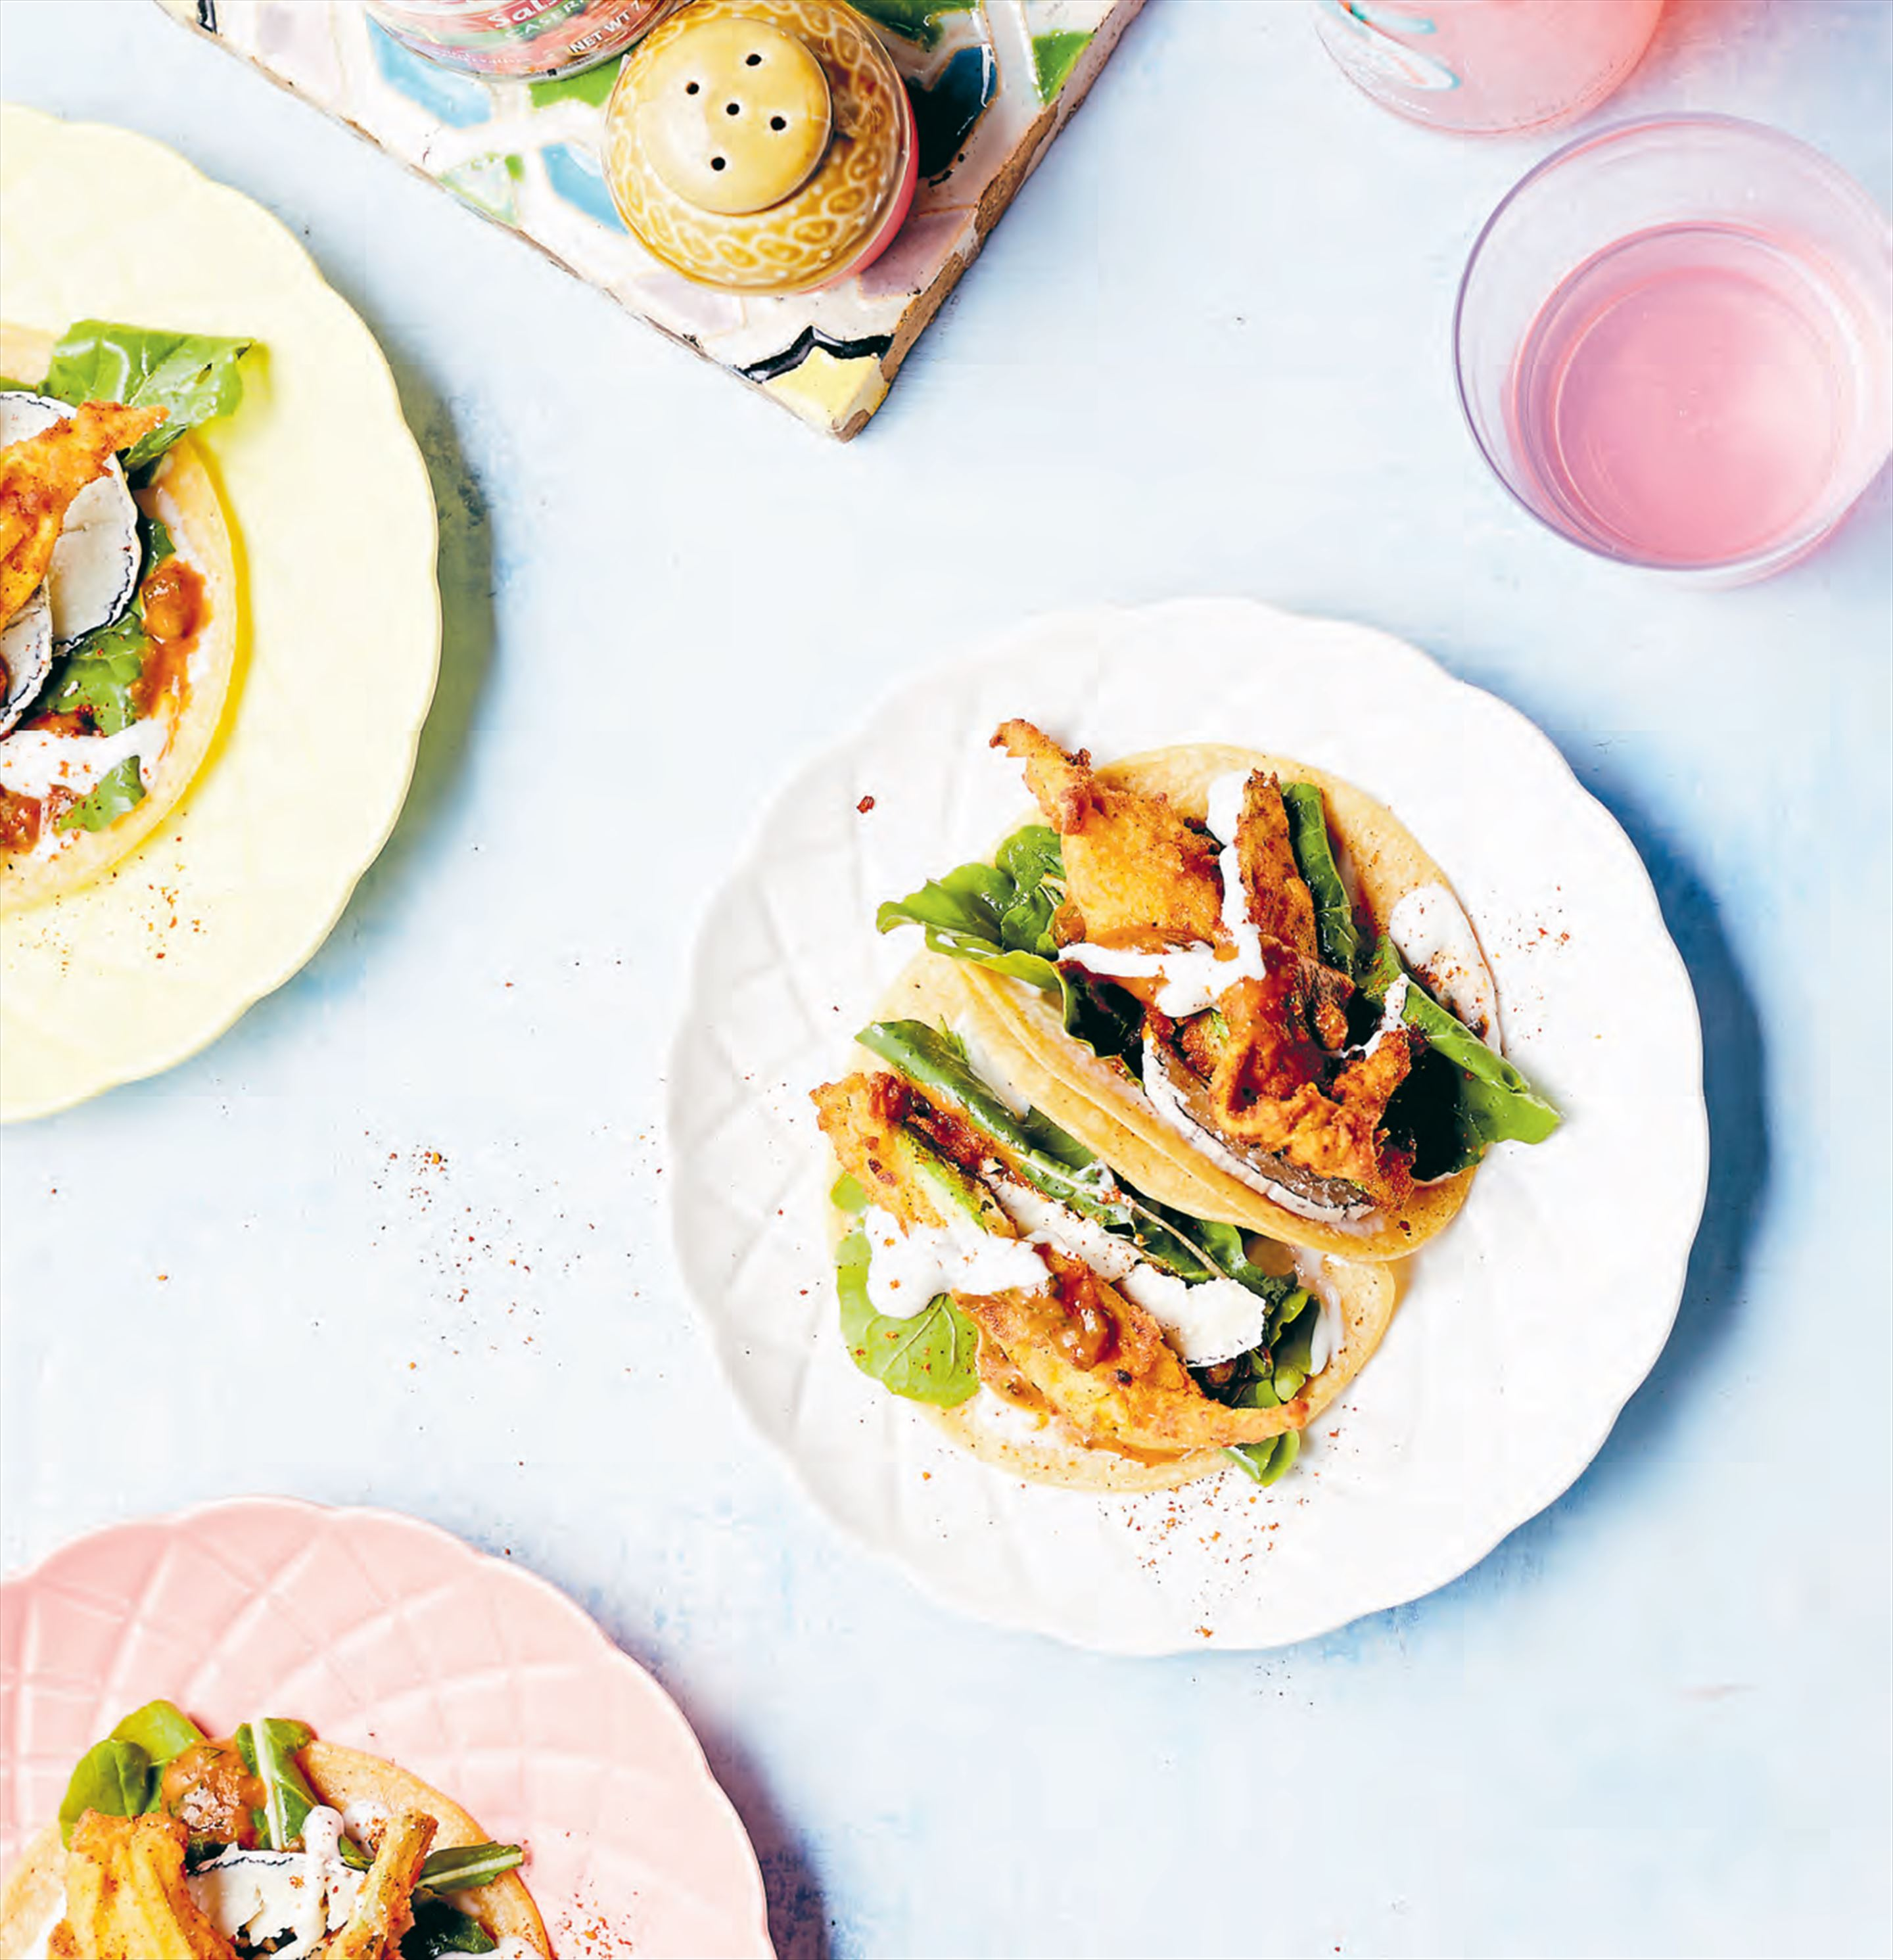 Zucchini flower & rocket tacos with goat's cheese & veracruz dressing